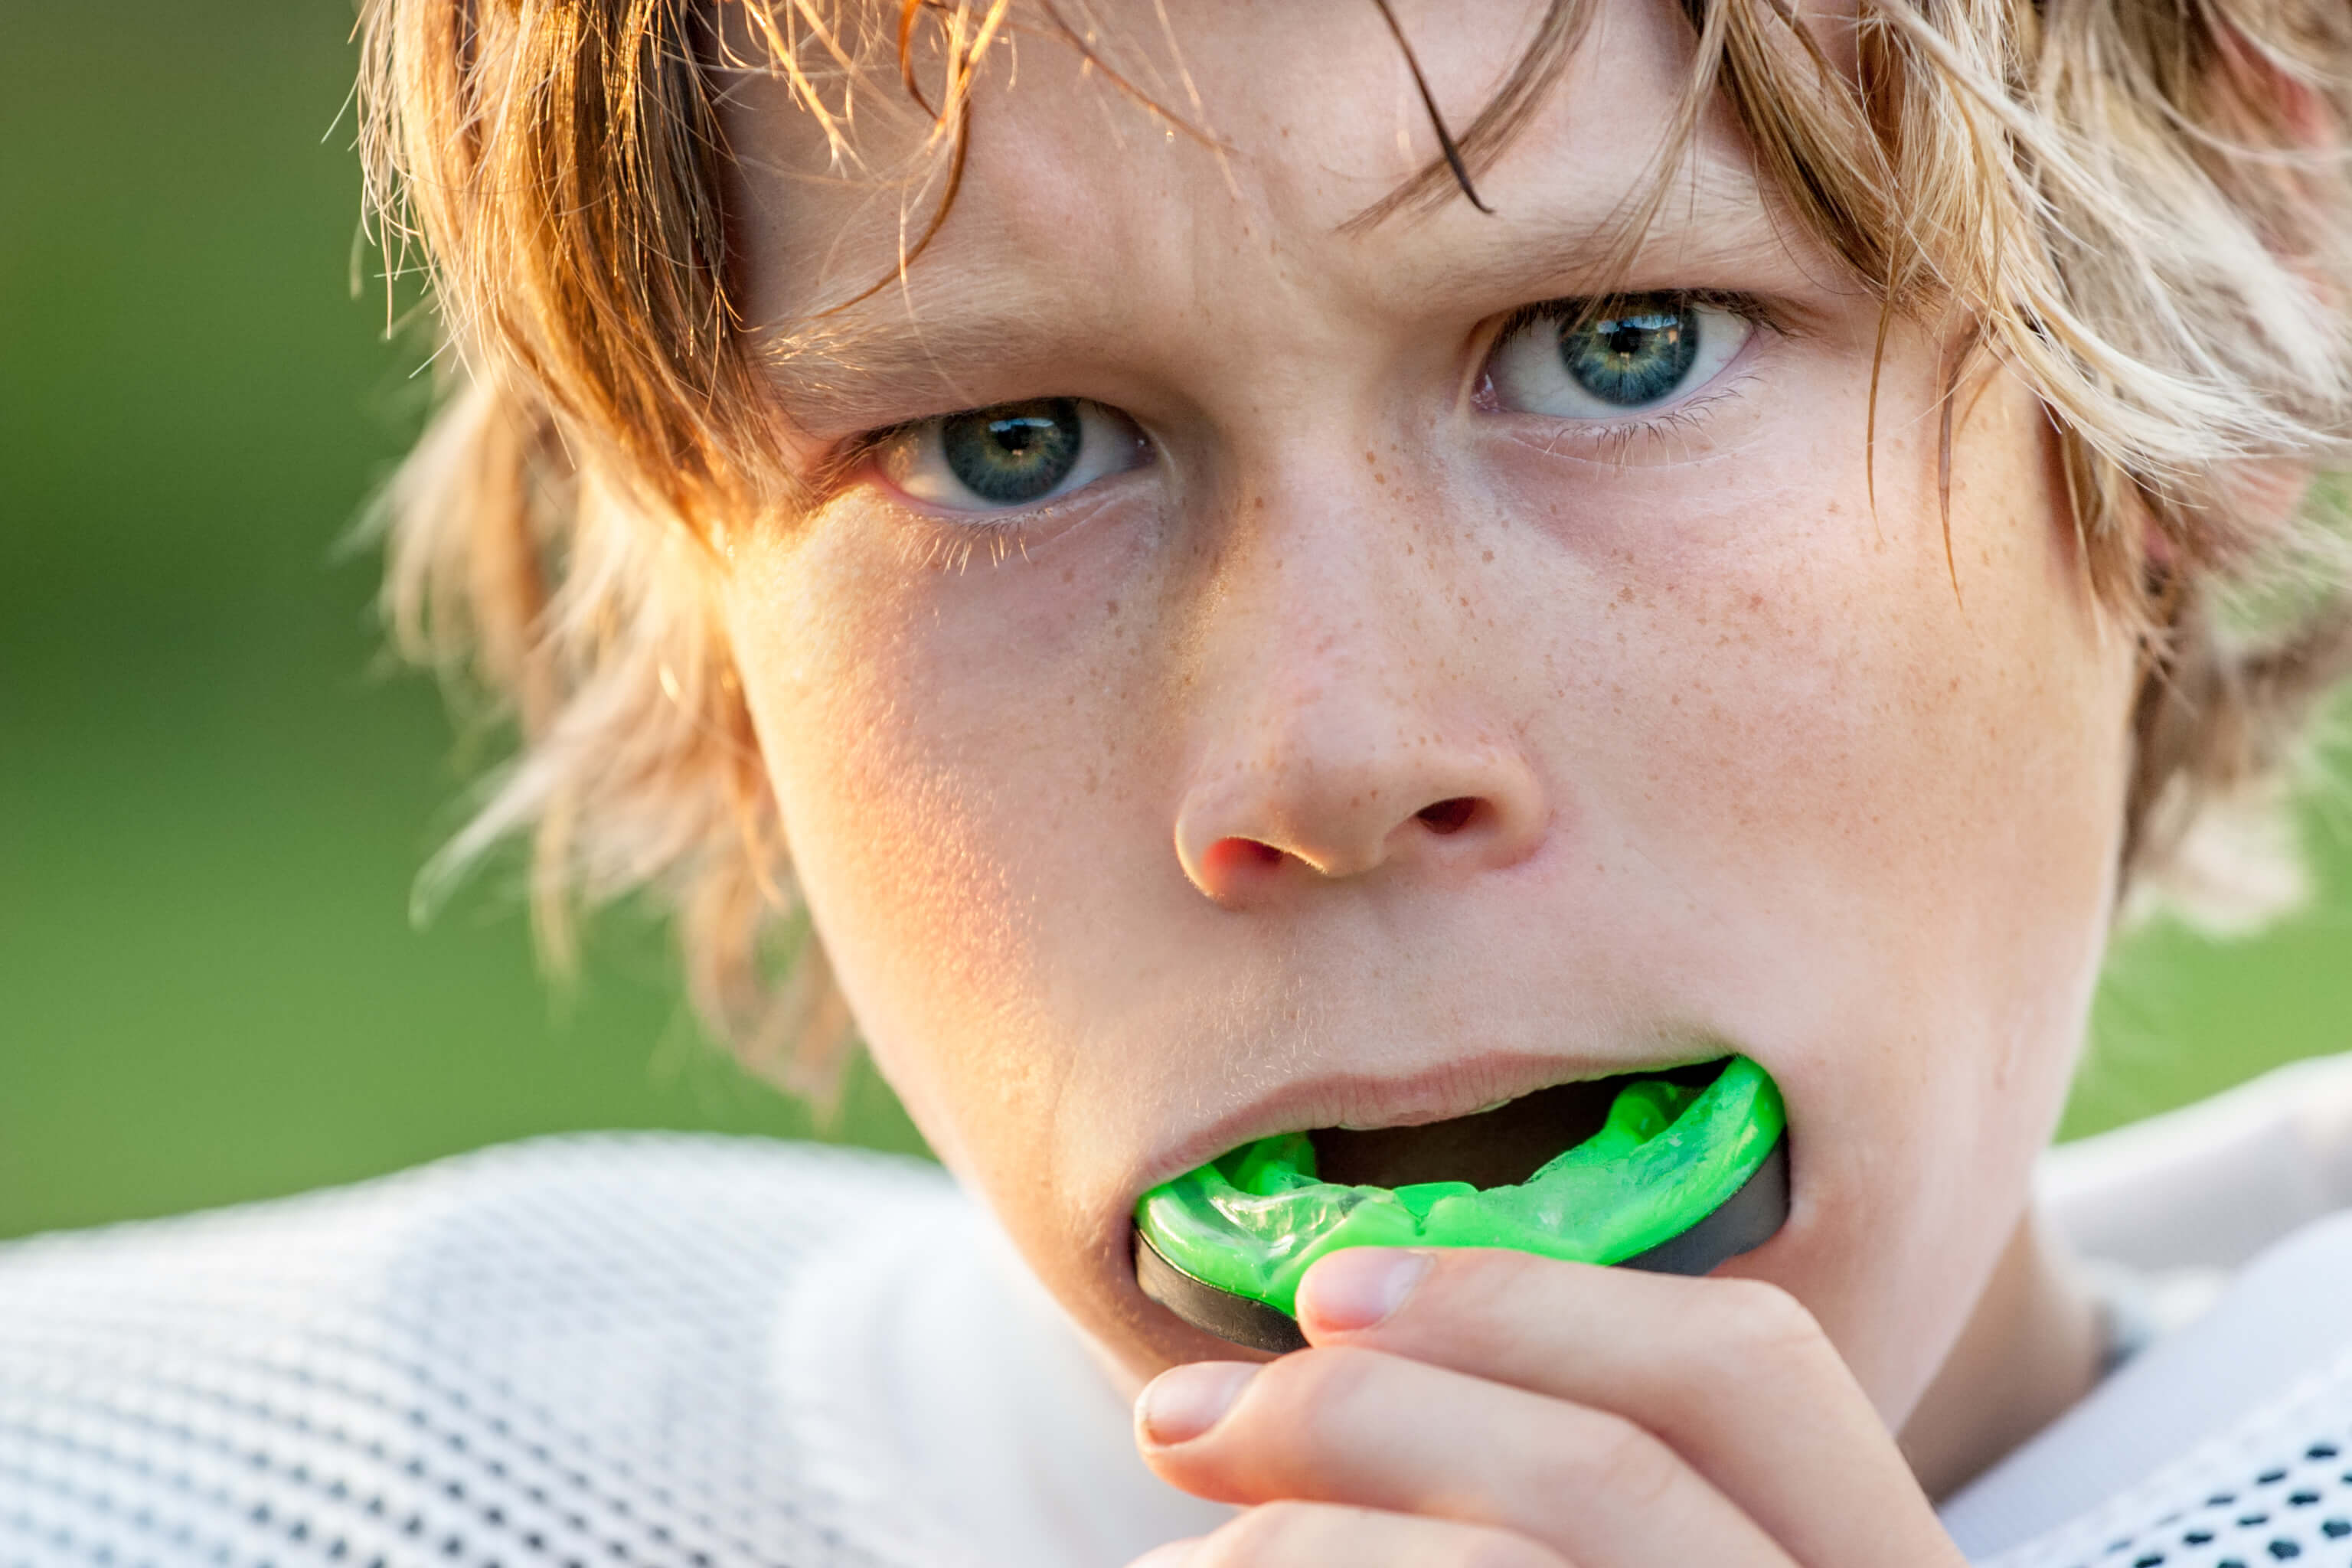 What You Need To Know About Mouthguards Before Buying